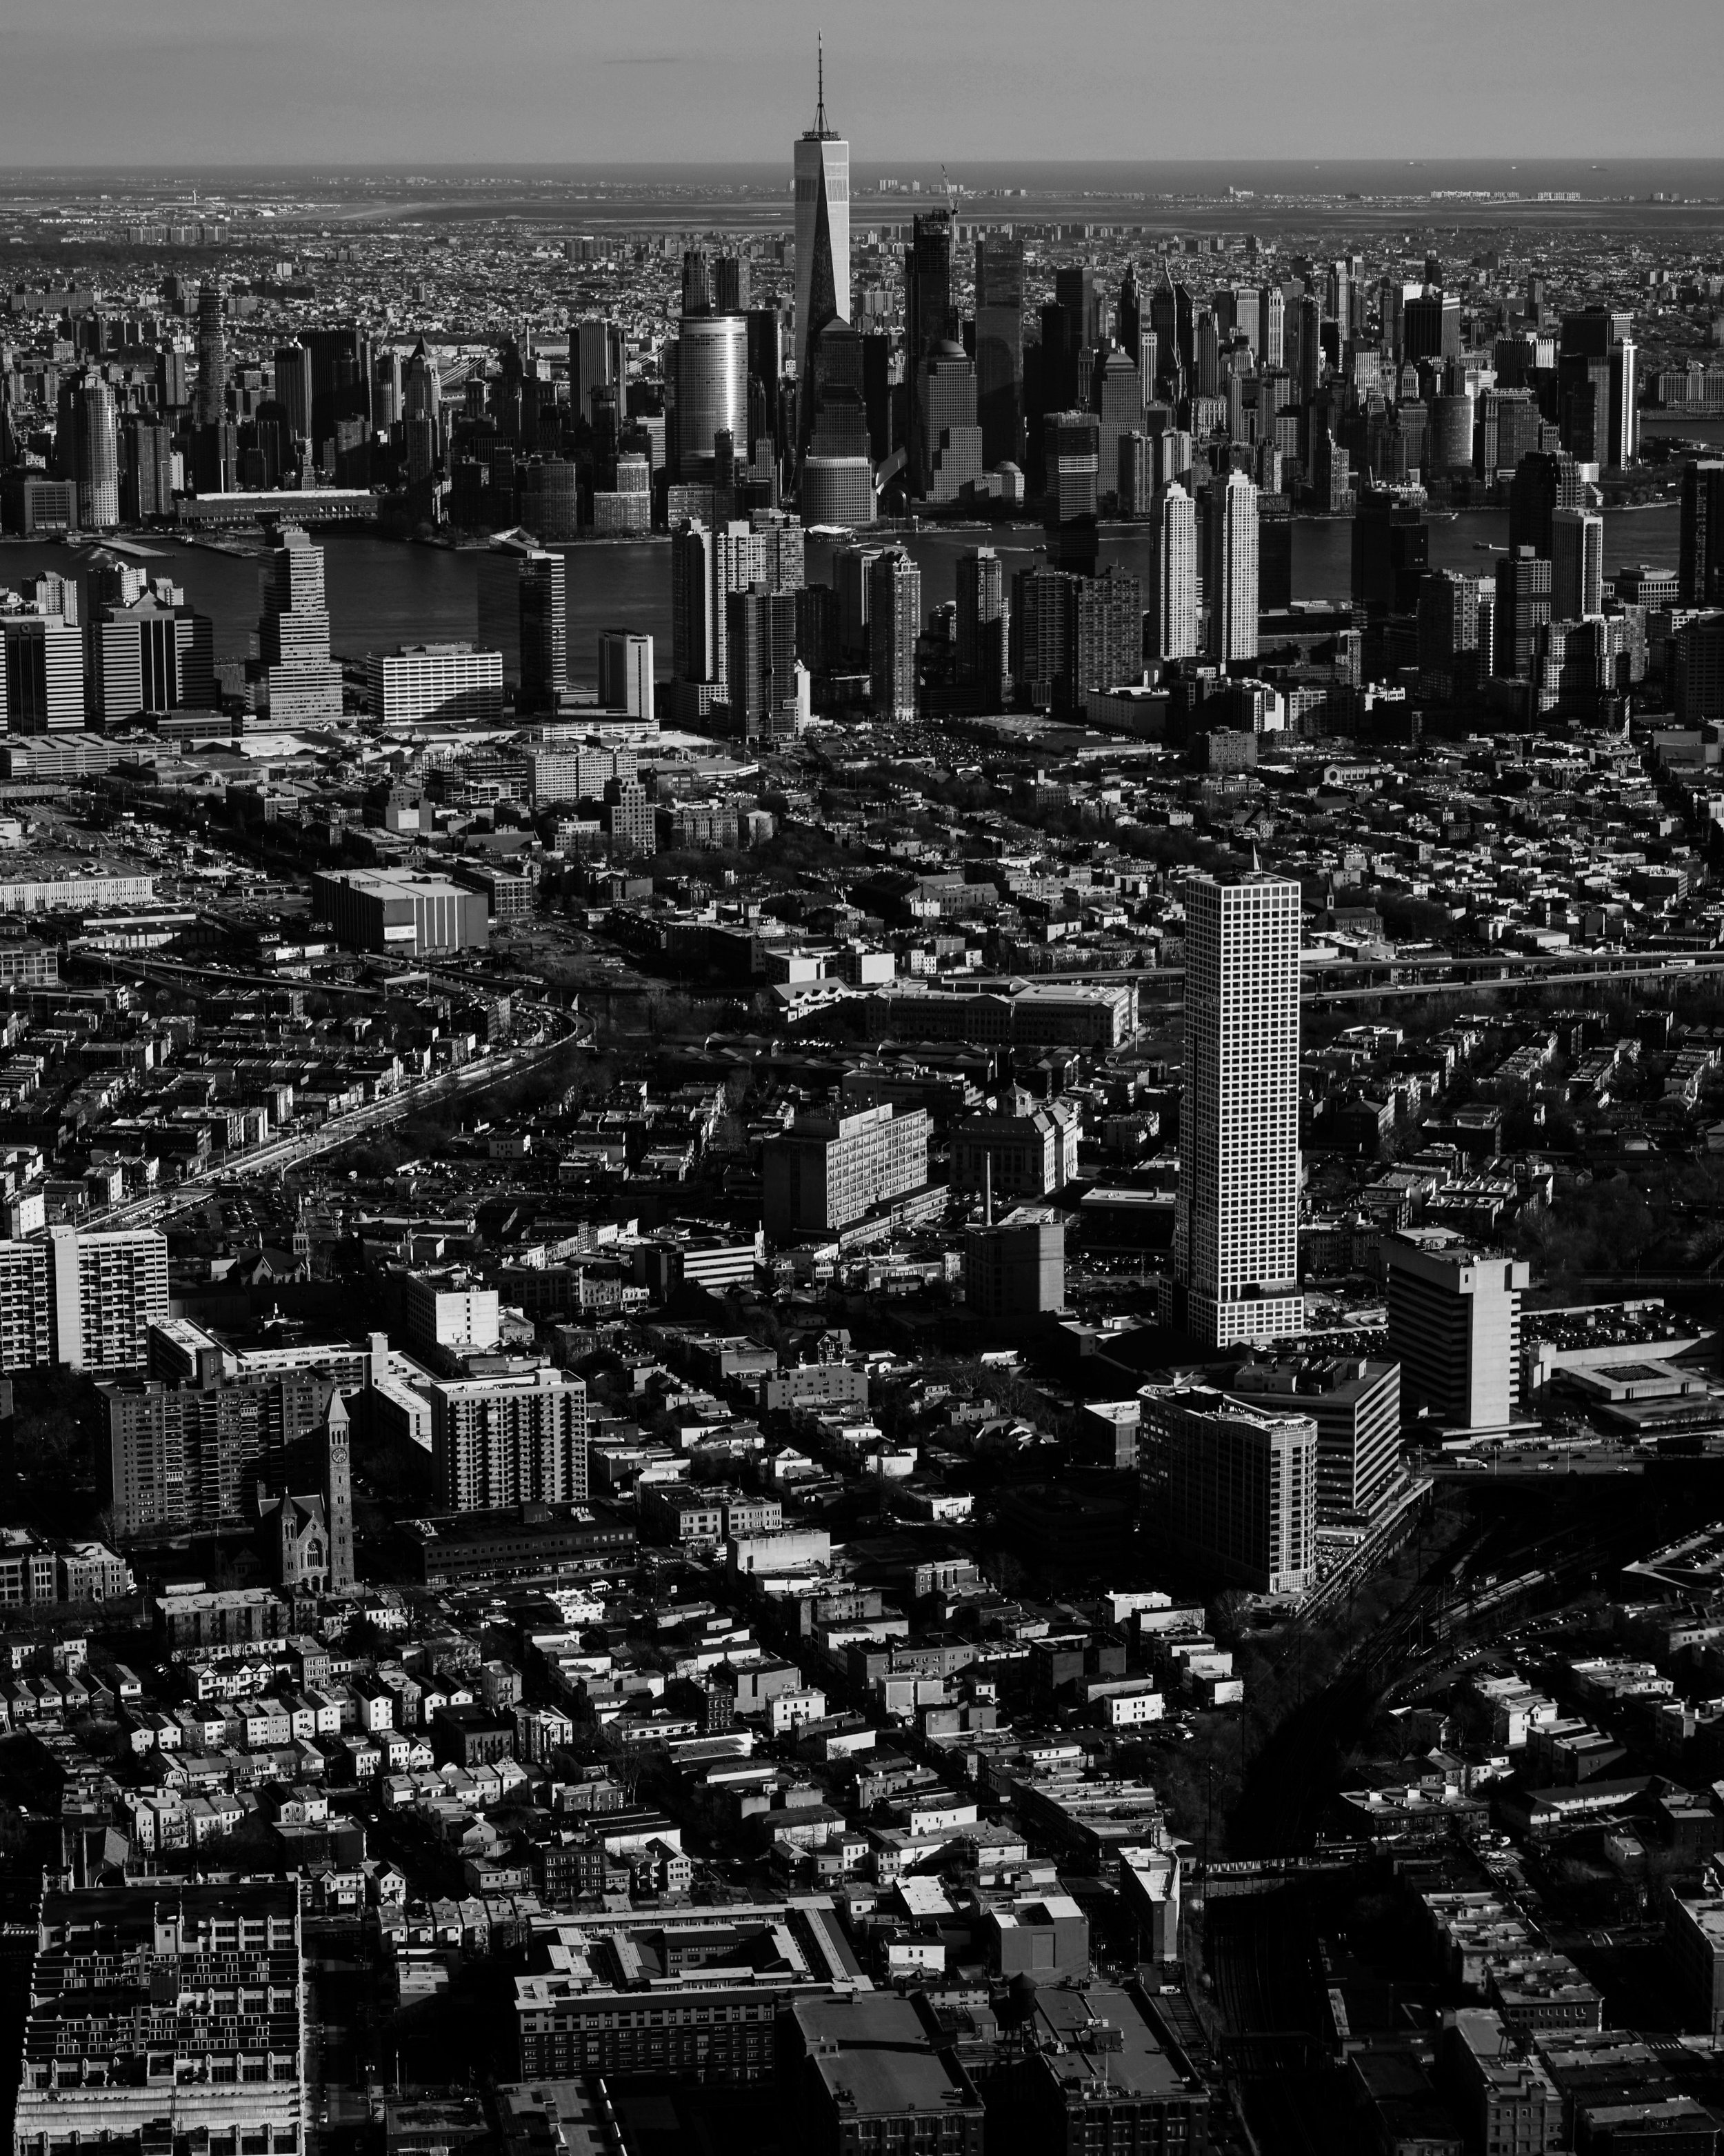 NYC, On Approach to Newark